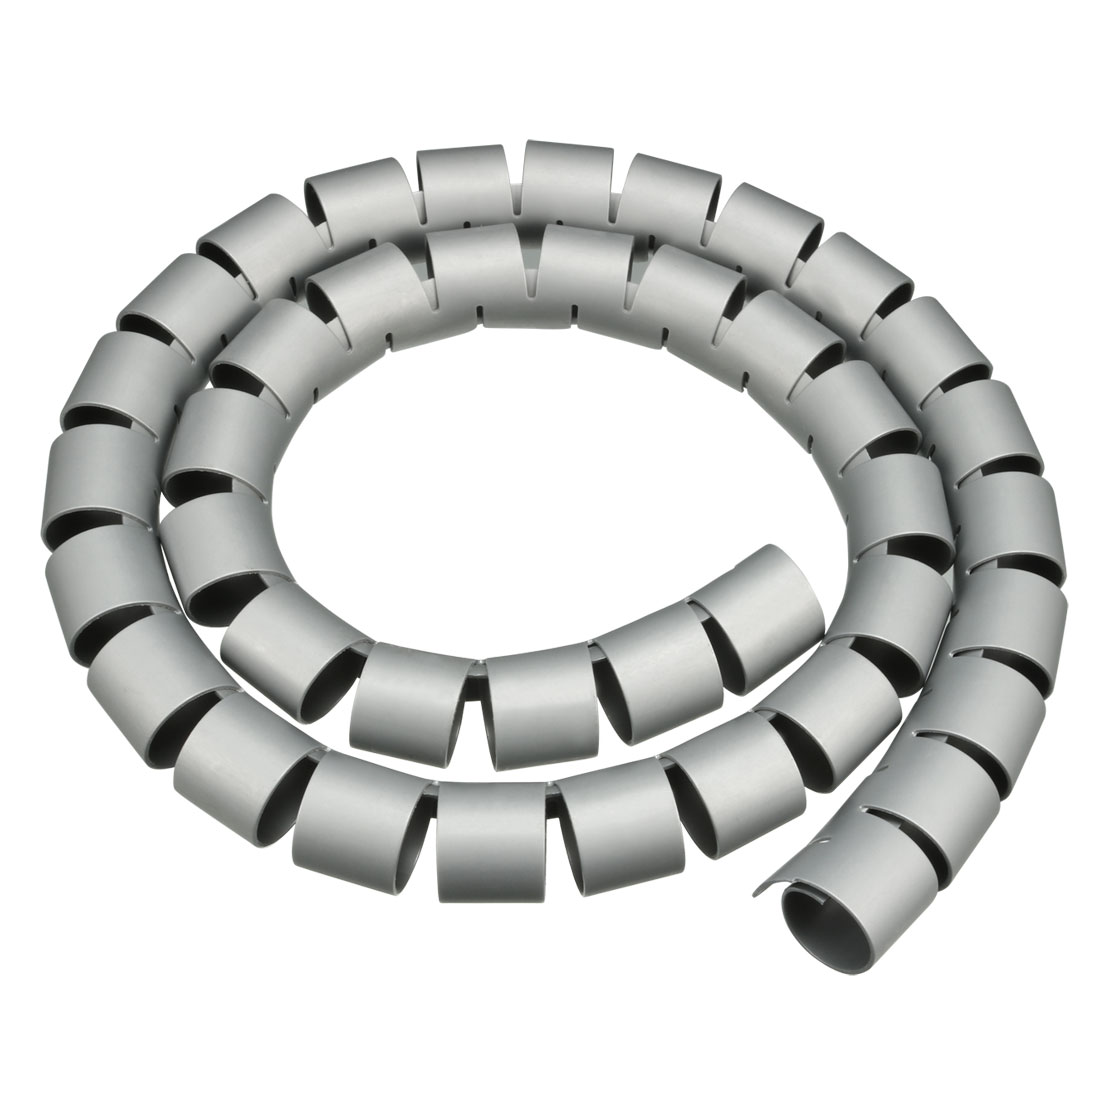 30mm Flexible Spiral Tube Cable Wiring Wrap Computer Manage Cord Gray 1M